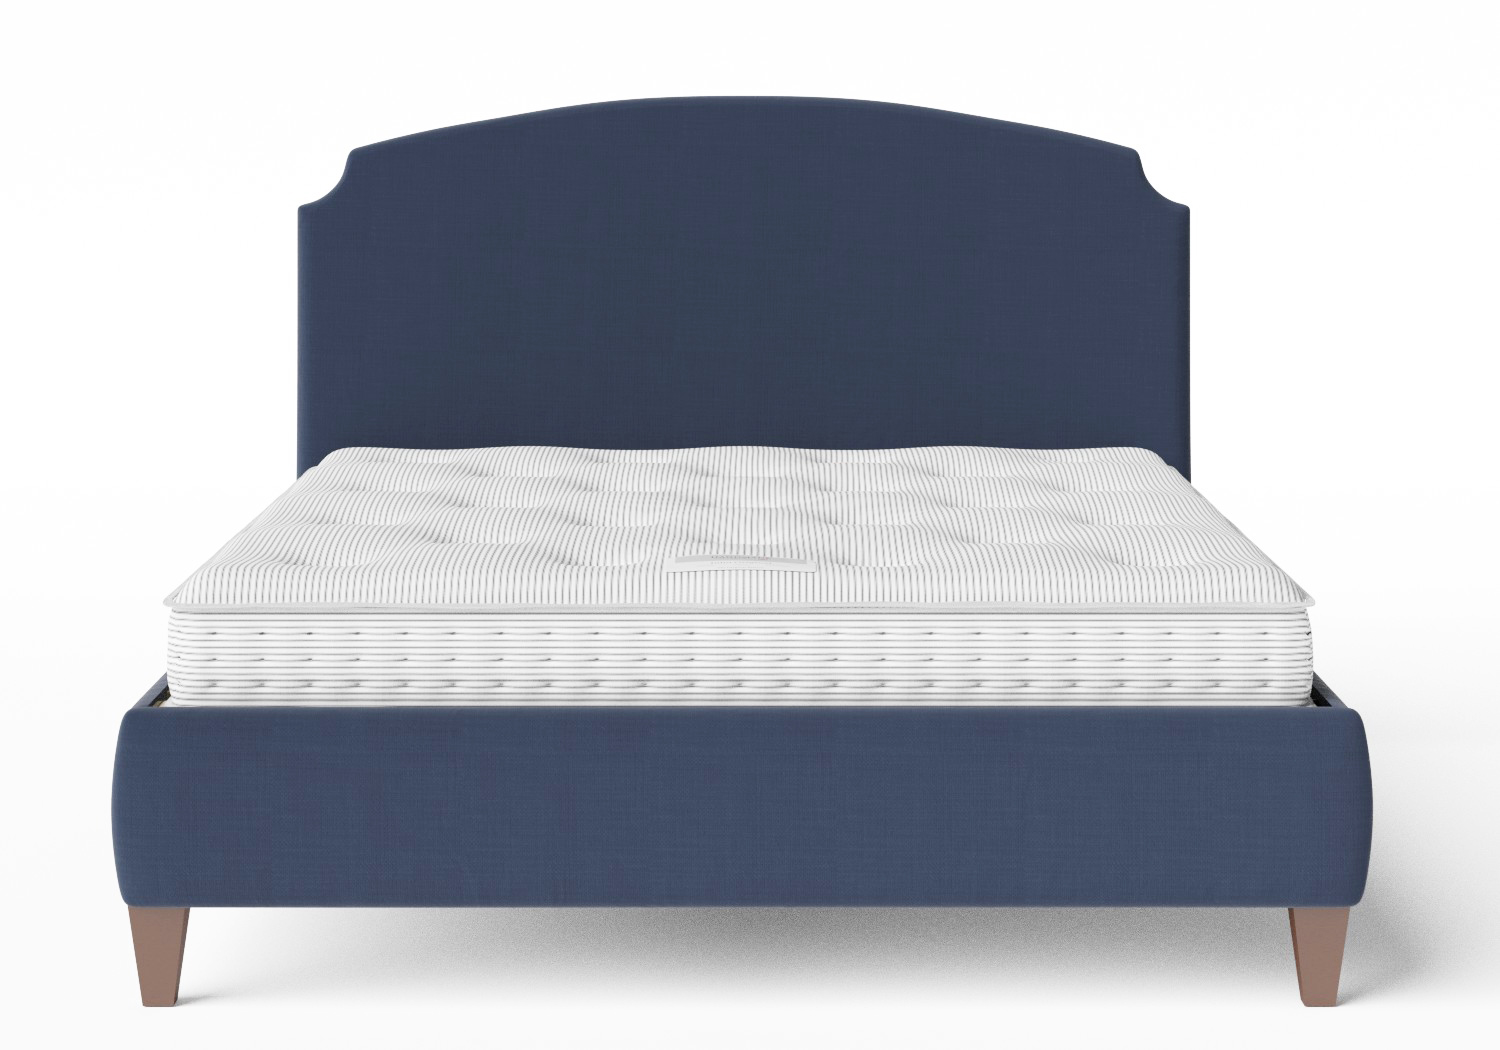 Lide Upholstered Bed in Navy fabric shown with Juno 1 mattress